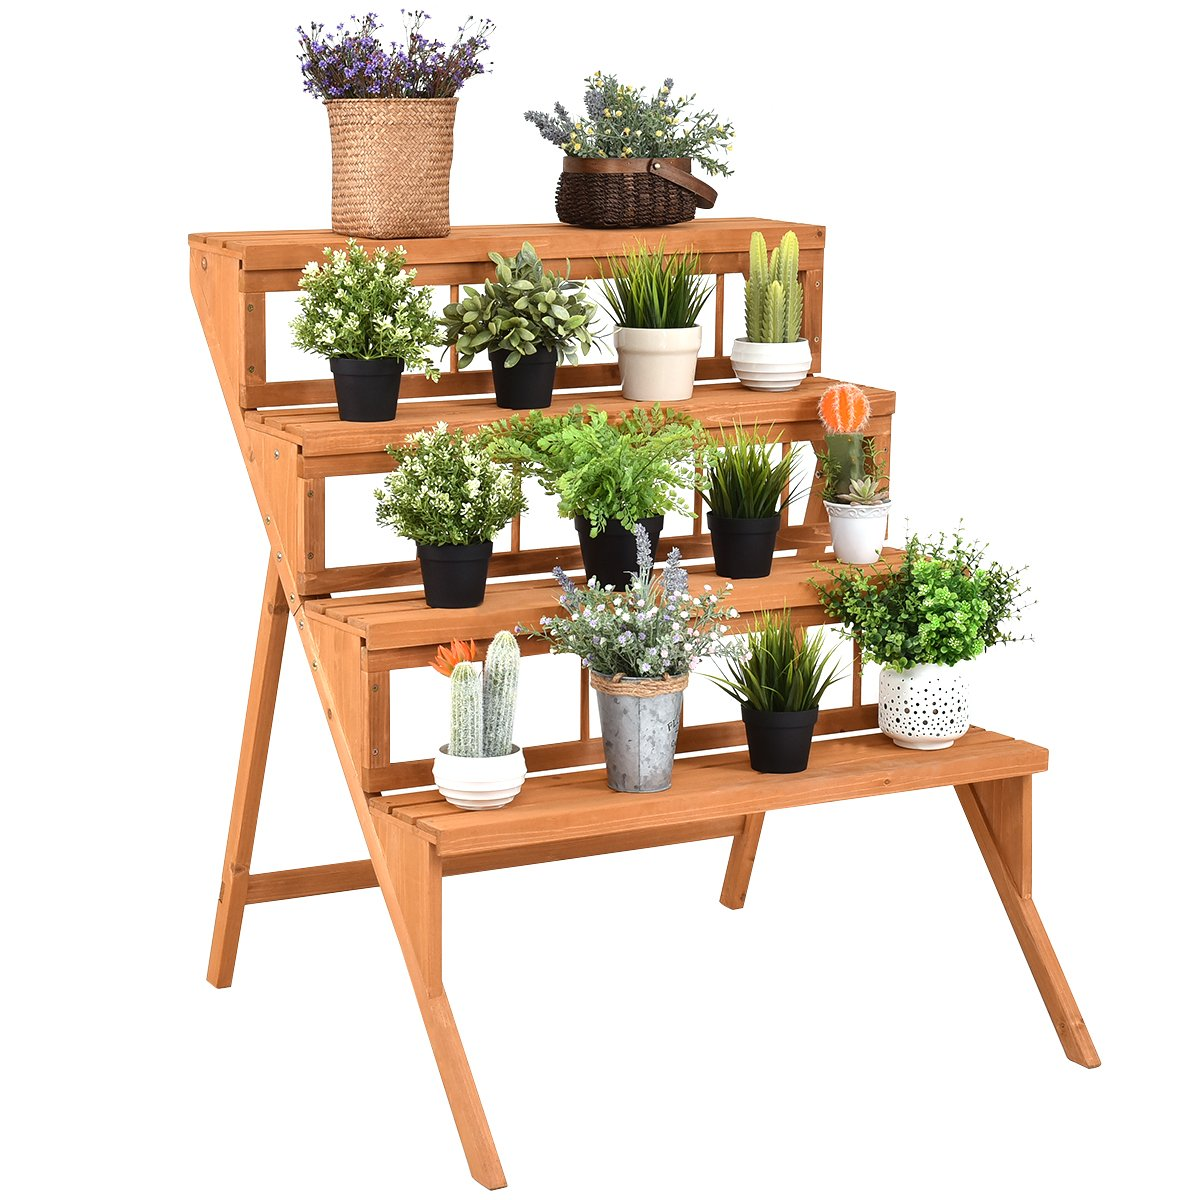 Cheap 3 Tier Pot Plant Stand Find 3 Tier Pot Plant Stand Deals On Line At Alibaba Com